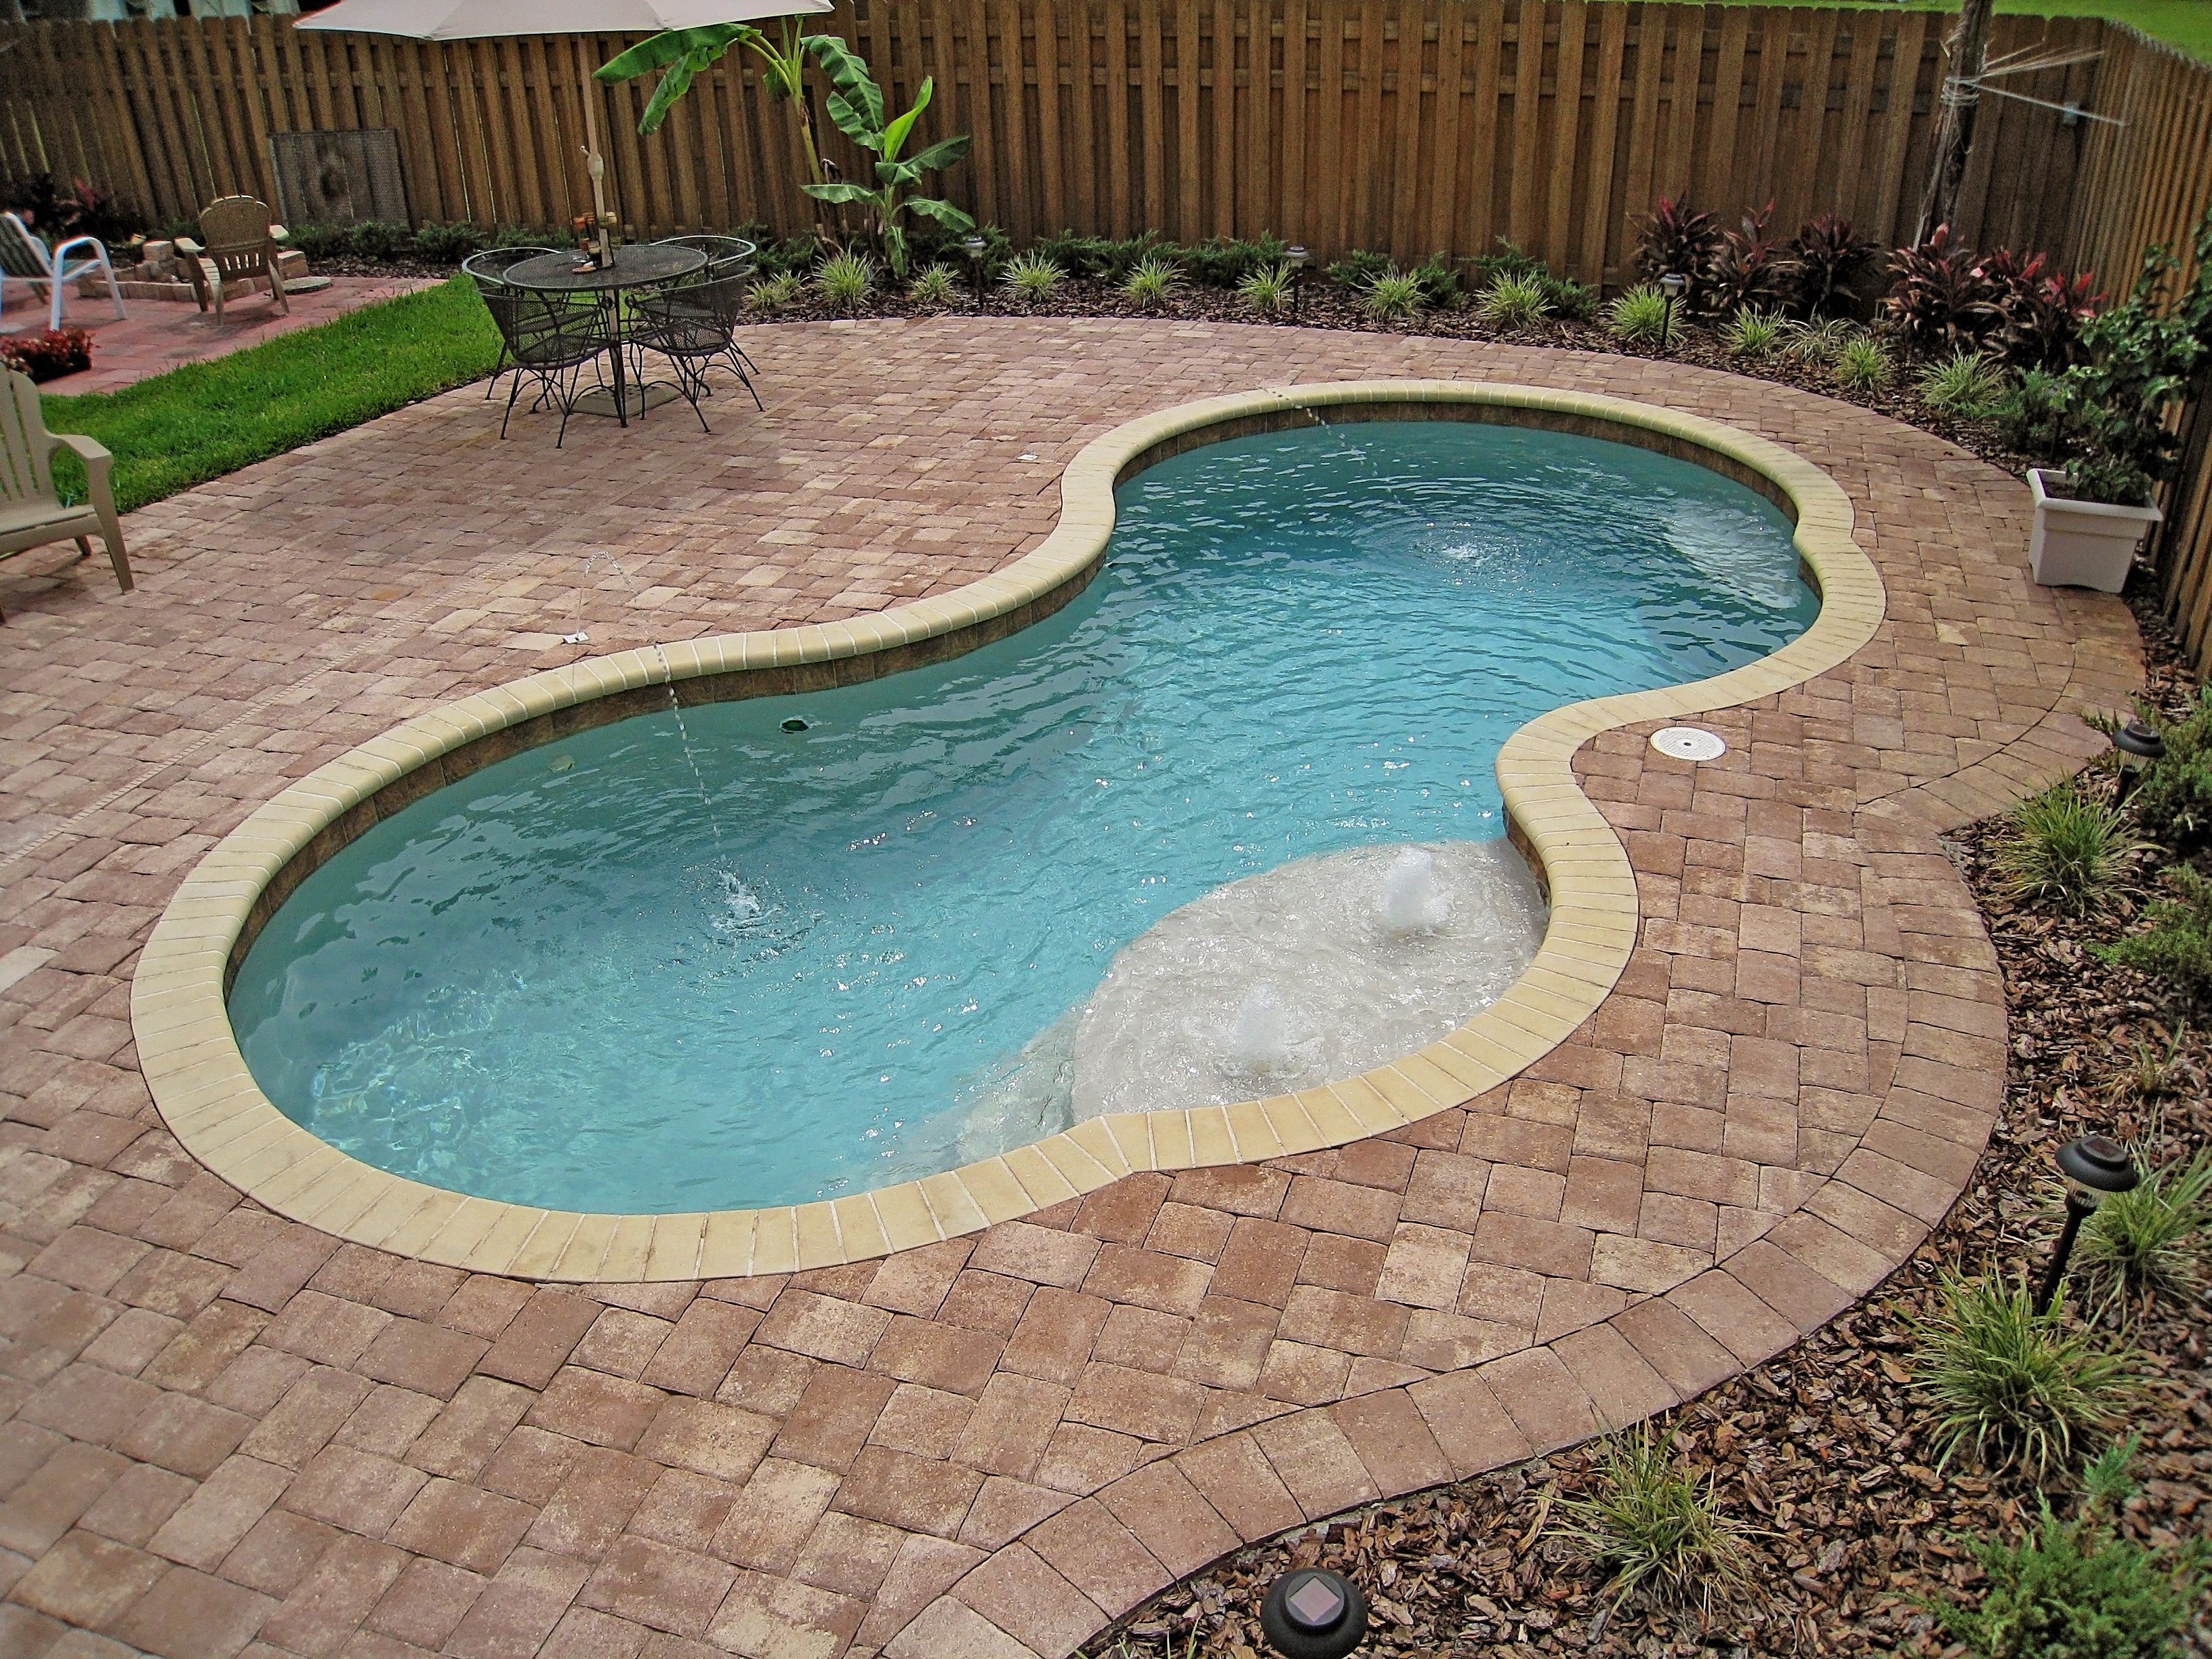 Fiberglass Swimming Pool Designs fiberglass swimming pool designs stupefy this backyard has a cathedral fiberglass pool design by thursday home Fiberglass Pool Ideas Pool Design Fiberglass Pool Price With Lagoon Pool Design Concept Including Pool Stairs And Selected Chattanooga Fiberglass Pool